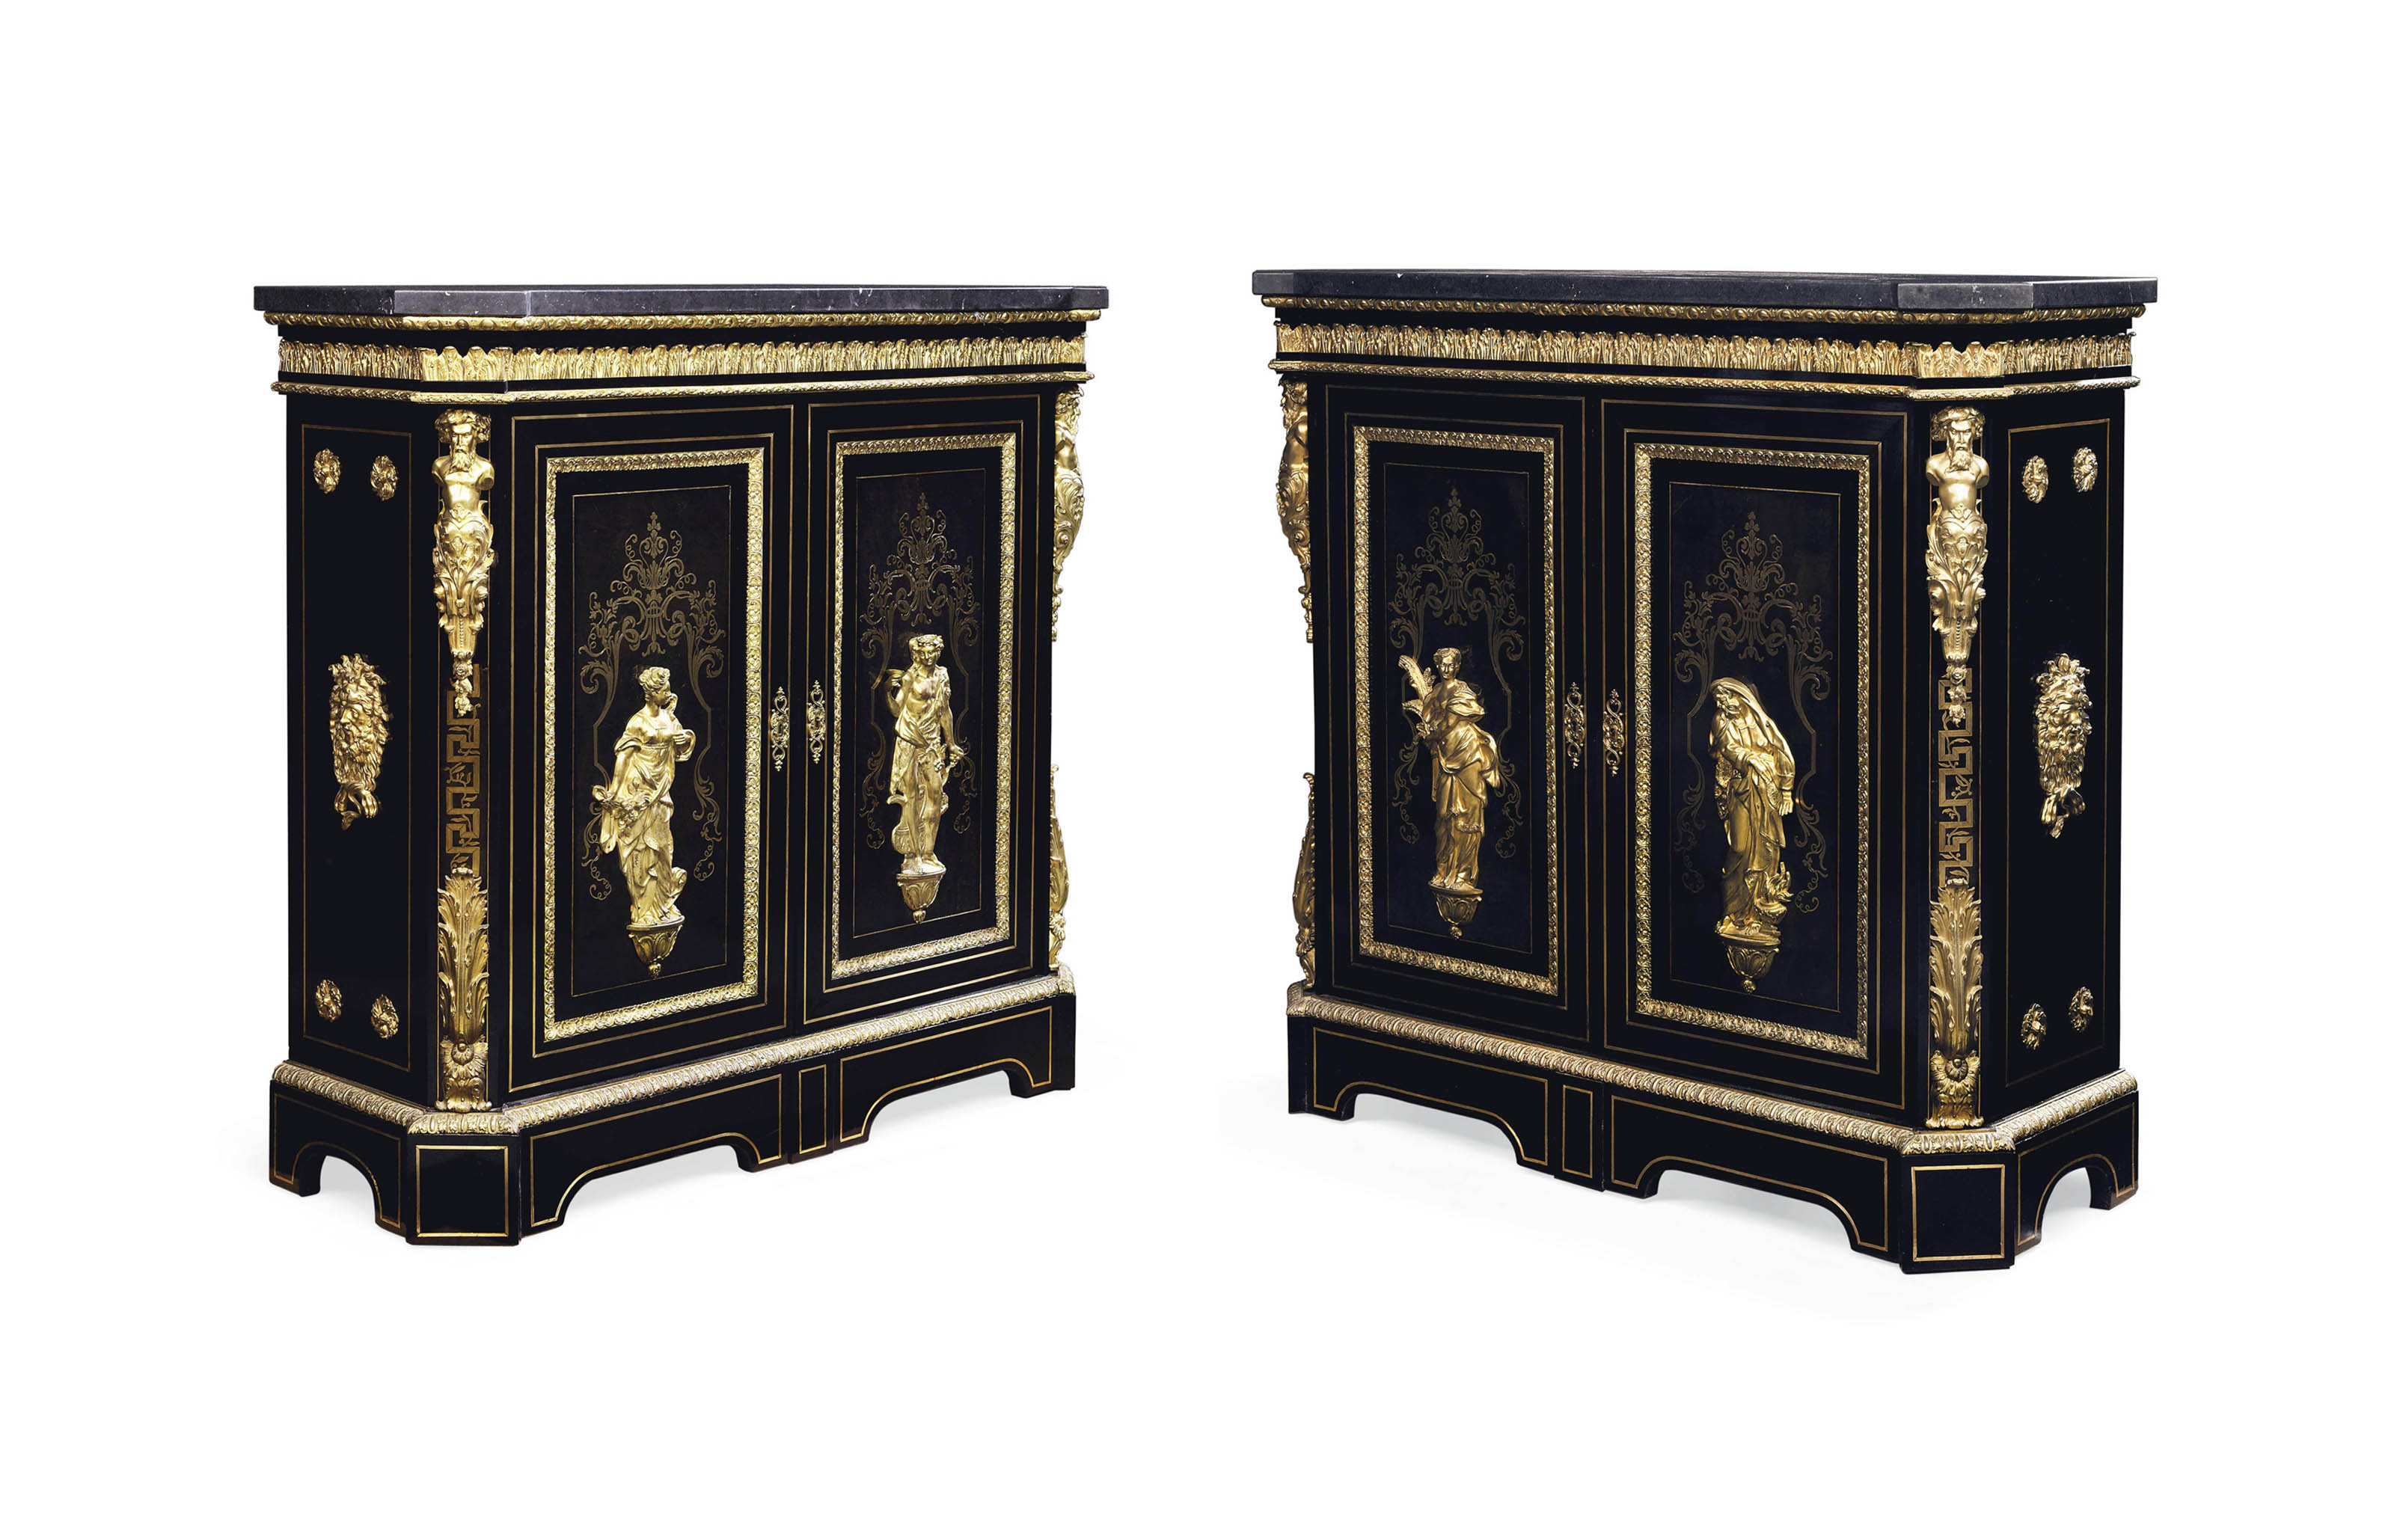 A PAIR OF NAPOLEON III ORMOLU-MOUNTED AND CUT BRASS-INLAID TORTOISESHELL, EBONY AND EBONISED MEUBLES D'APPUI